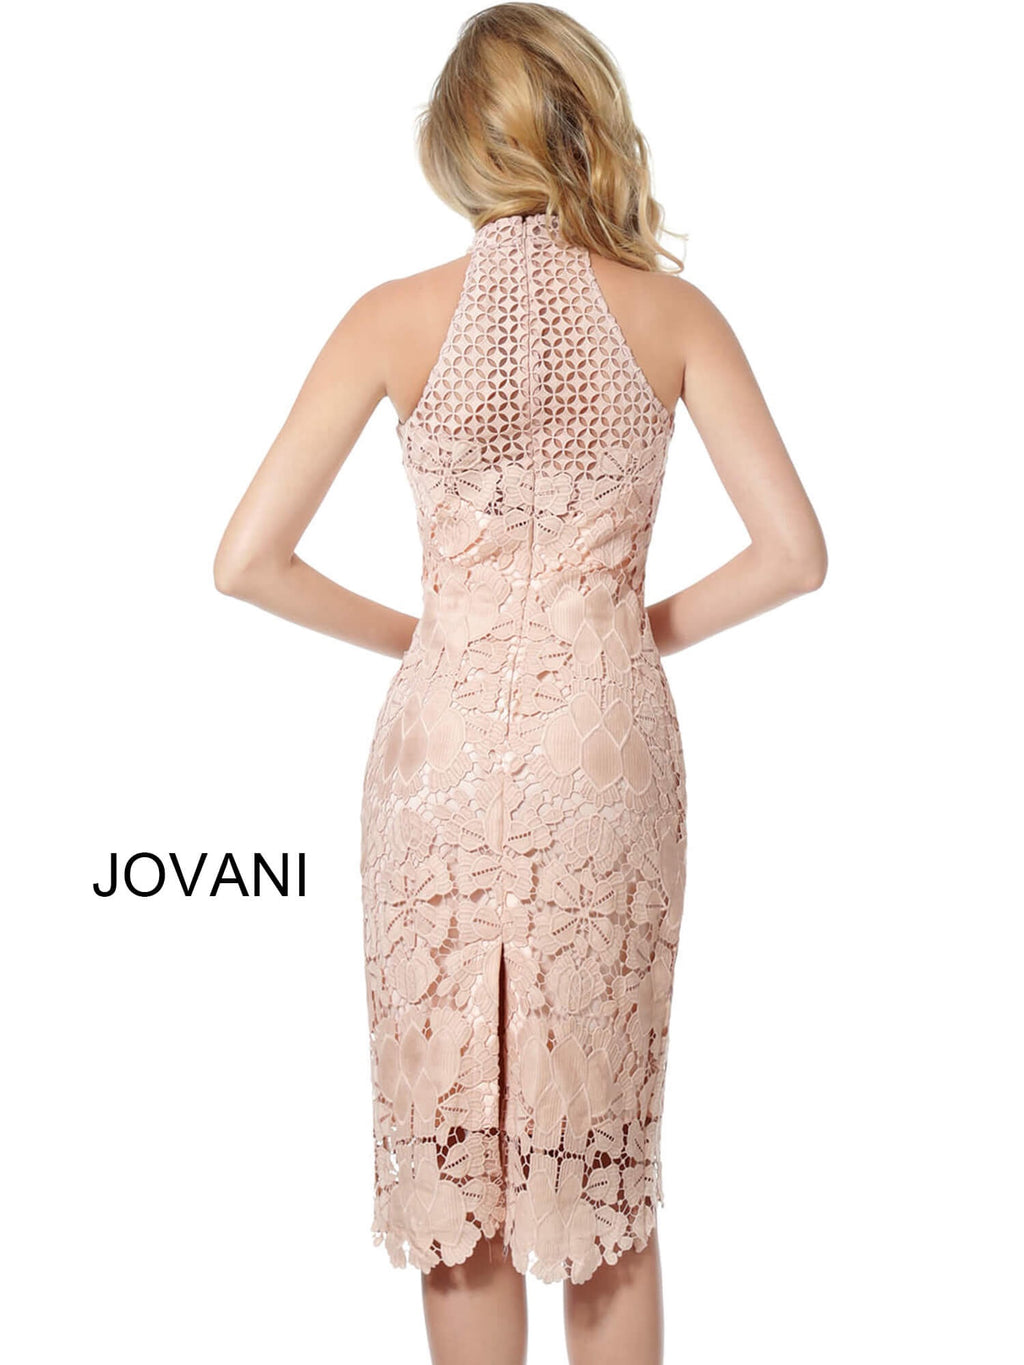 JOVANI 68747 Light Pink High Neck Sleeveless Lace Cocktail Dress - CYC Boutique